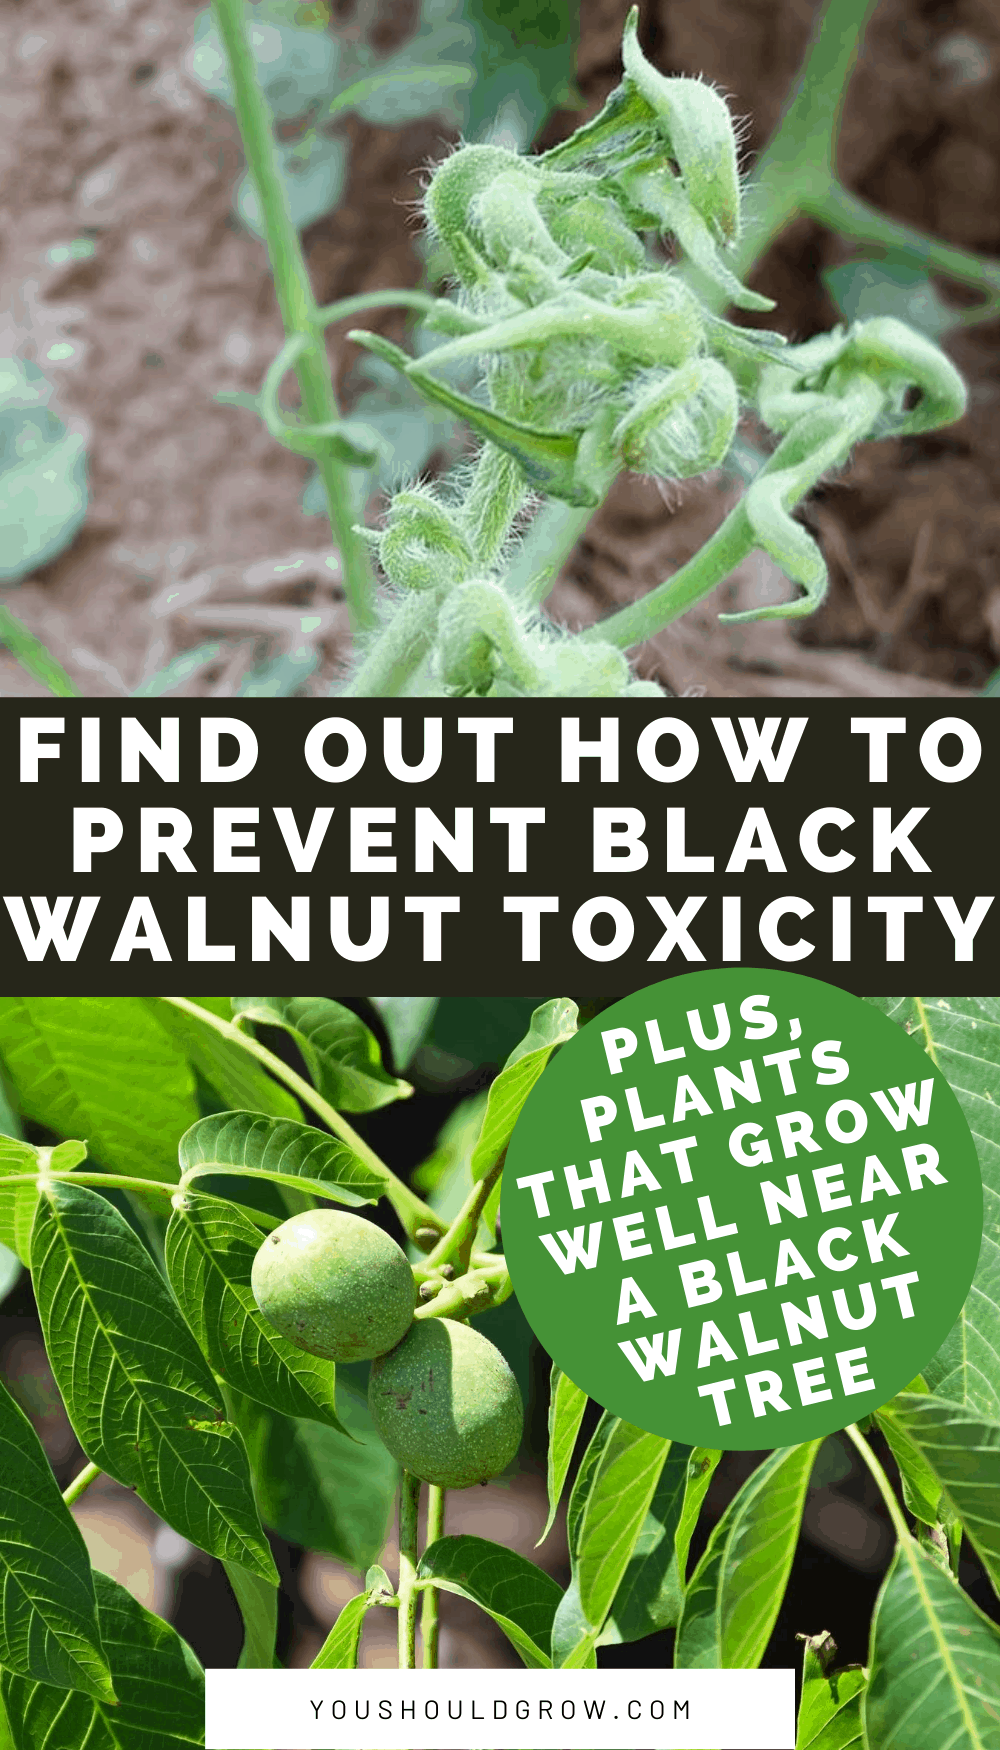 Vegetable gardening near black walnut trees can be disappointing. Black walnut toxicity is a common cause of wilting and death of vegetable plants. Here's what happens and what you can do about it.